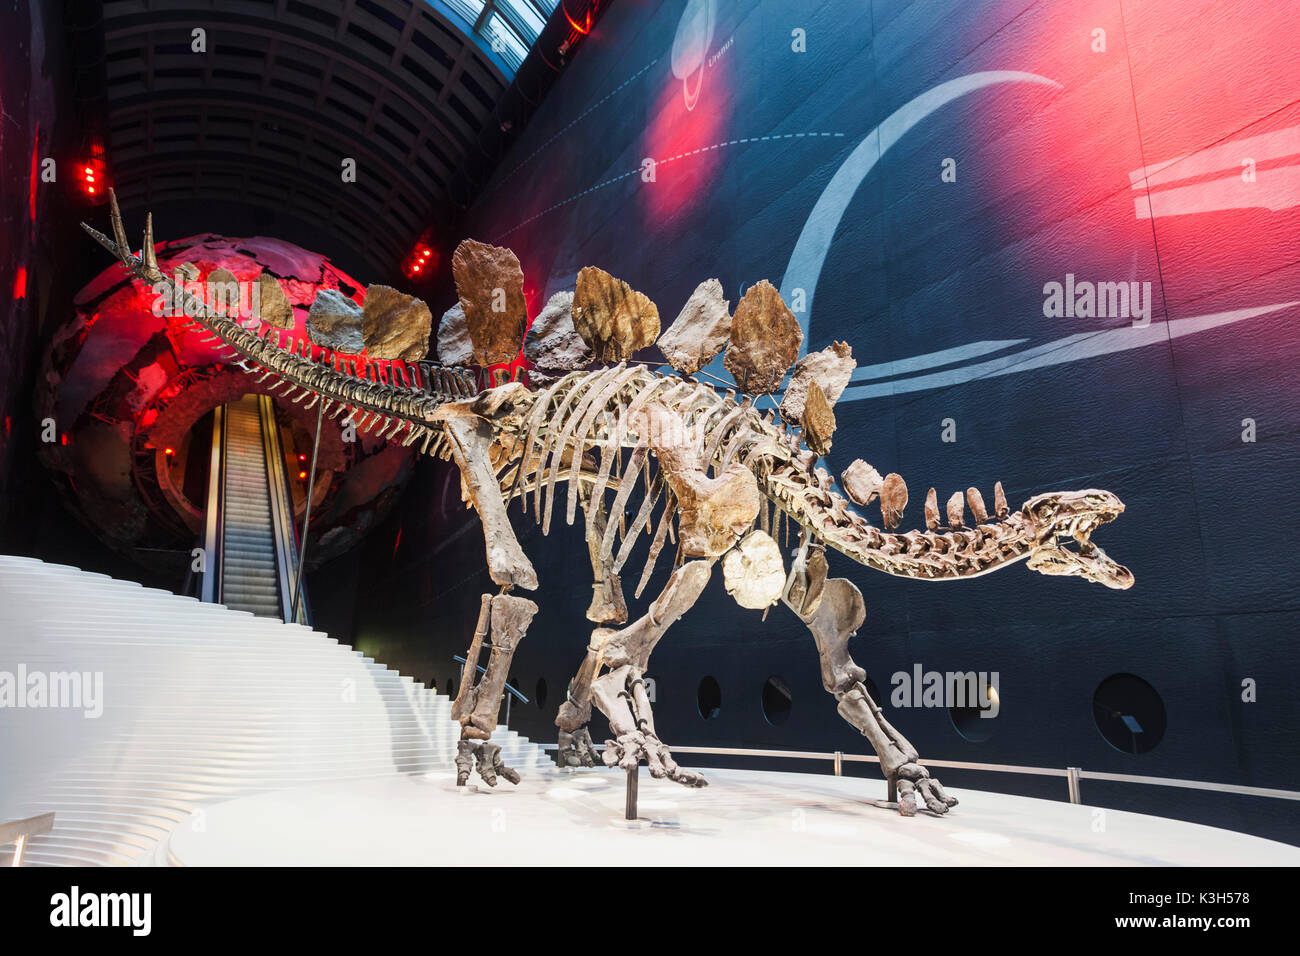 England, London, Kensington, Natural History Museum, Skeleton of a Stegosaurus Dinosaur - Stock Image